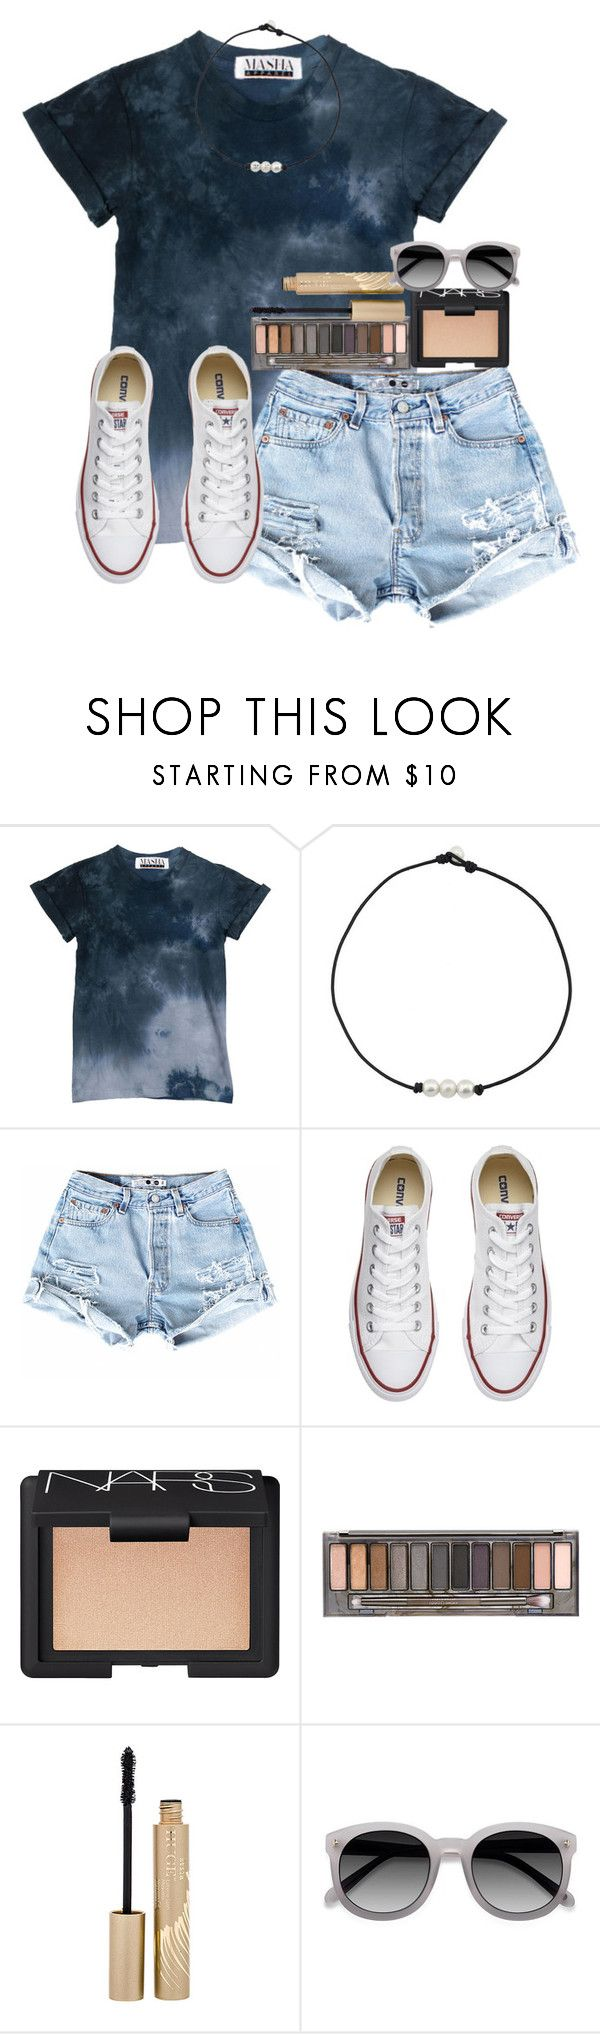 """Set inspired by my sis!"" by amaya-leigh ❤ liked on Polyvore featuring Converse, NARS Cosmetics, Urban Decay and Stila"